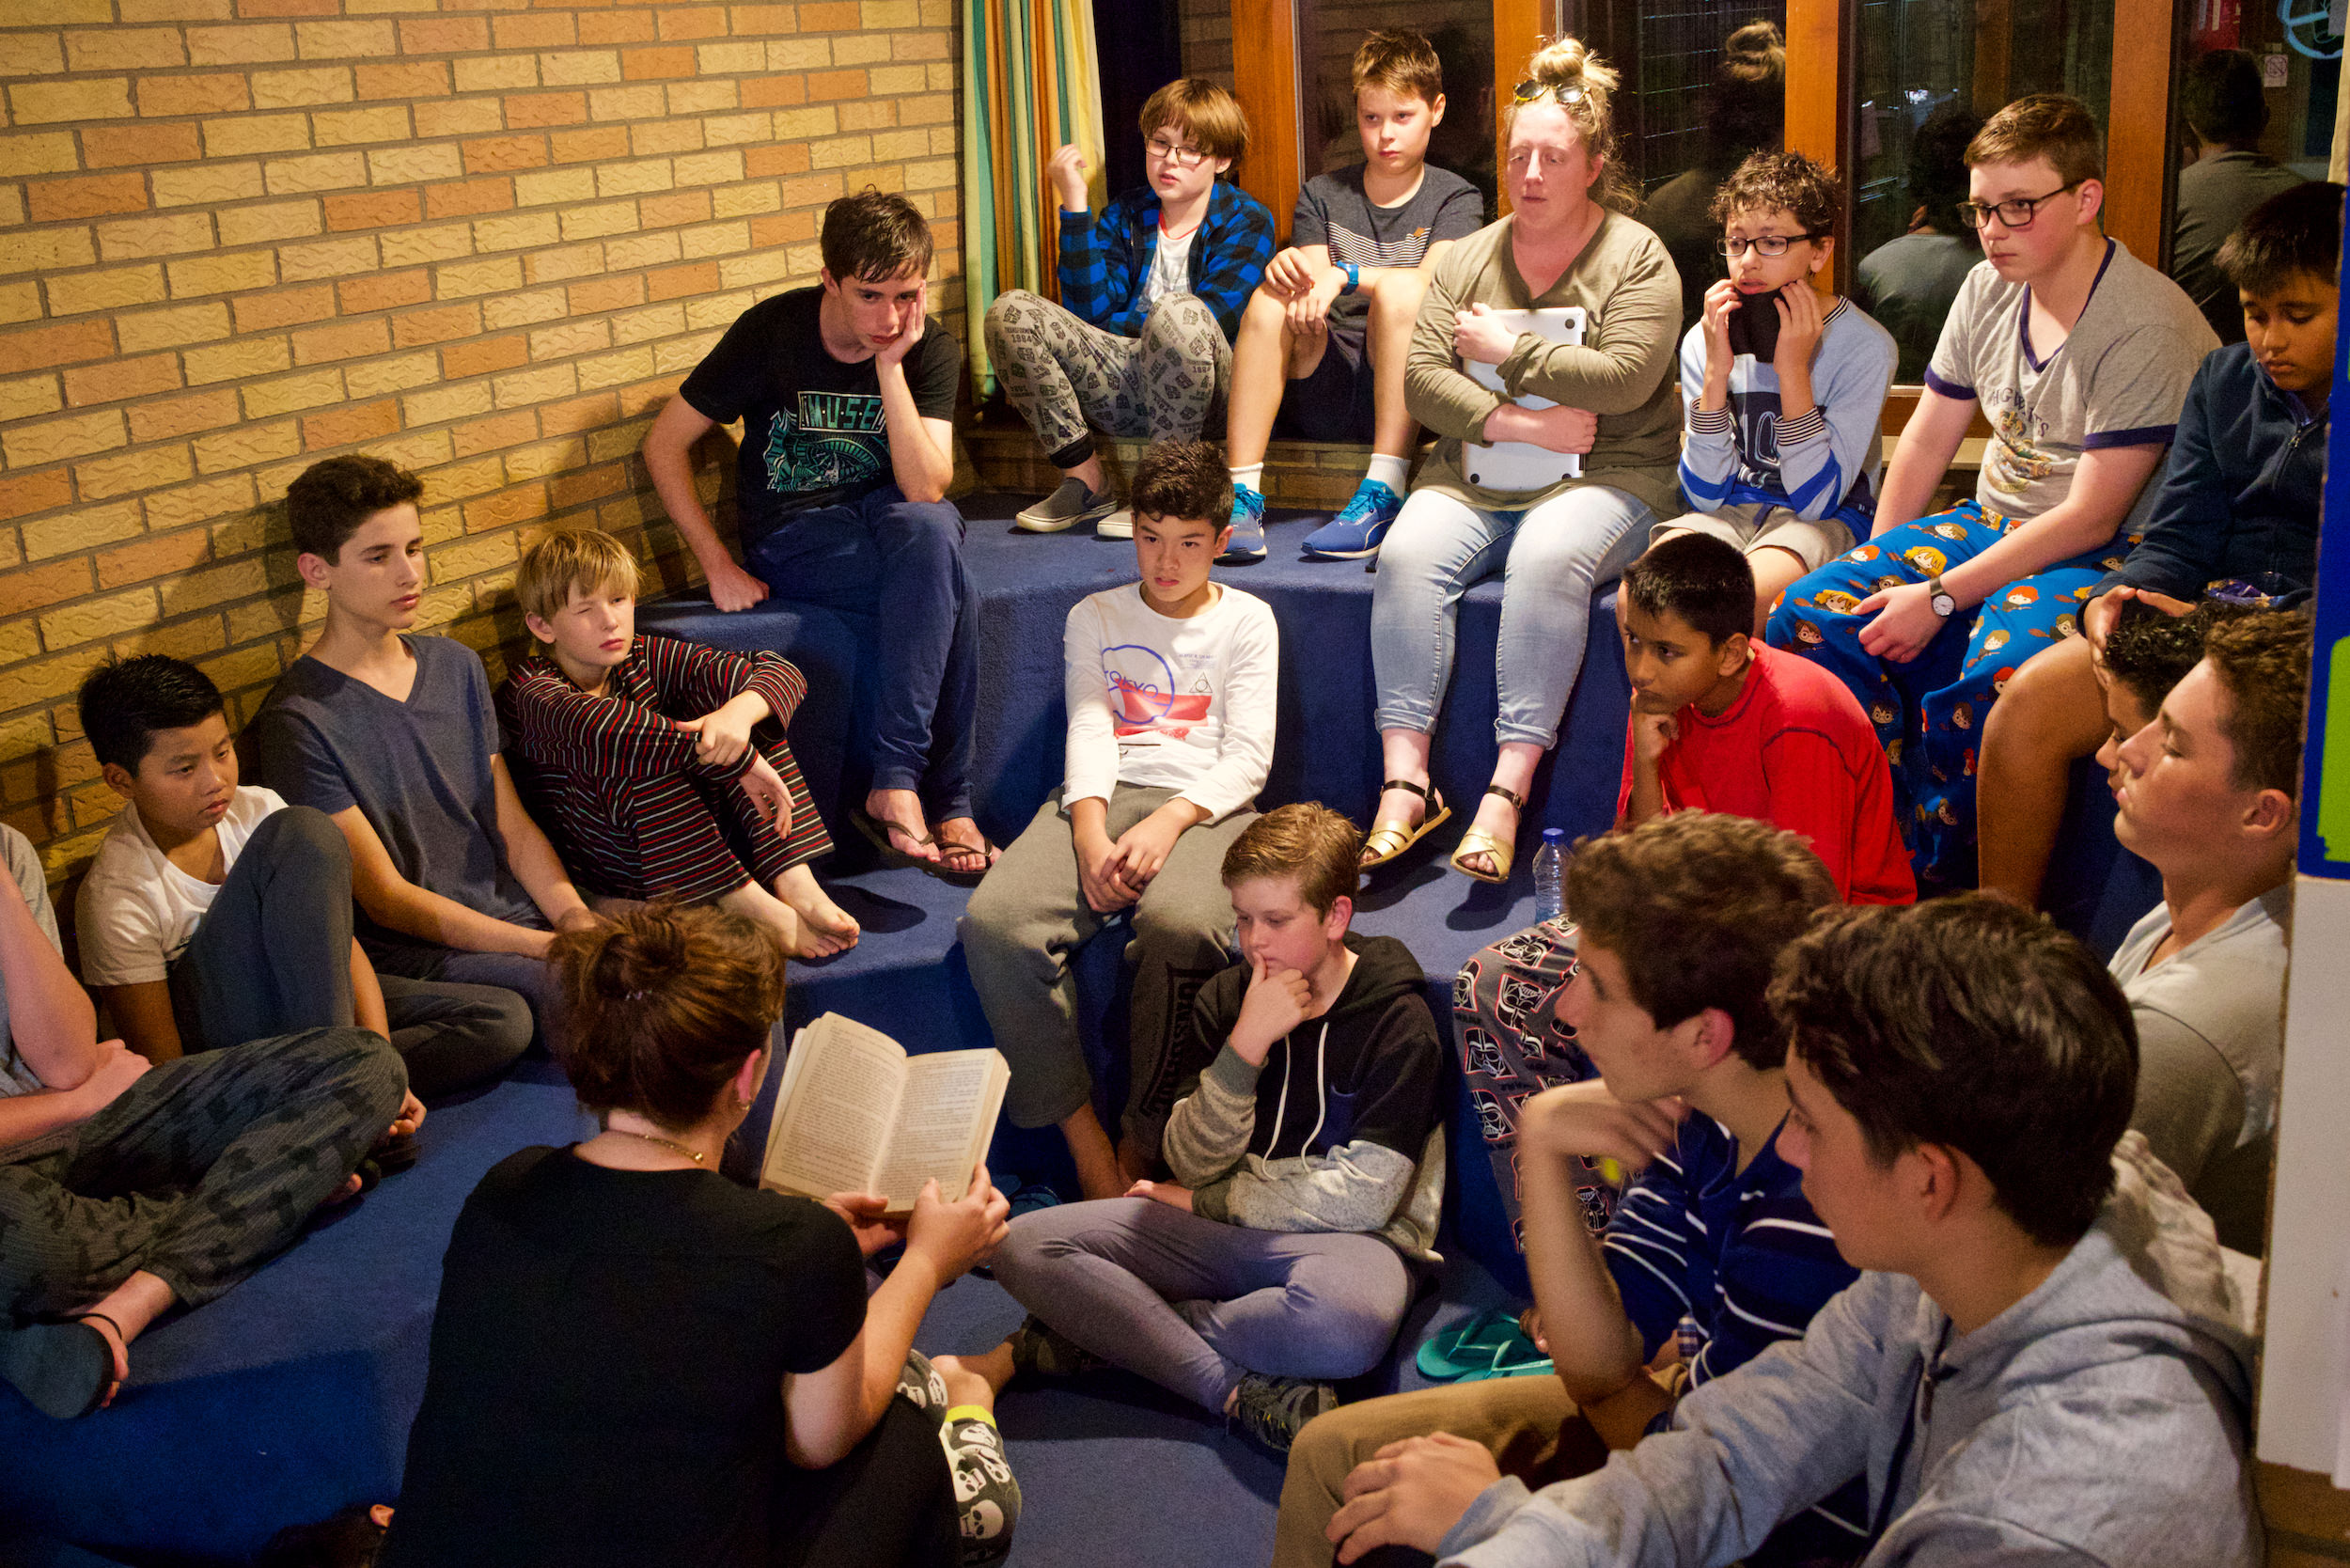 Choristers and Scholars gathered together to listen to the reading of Harry Potter before bed.